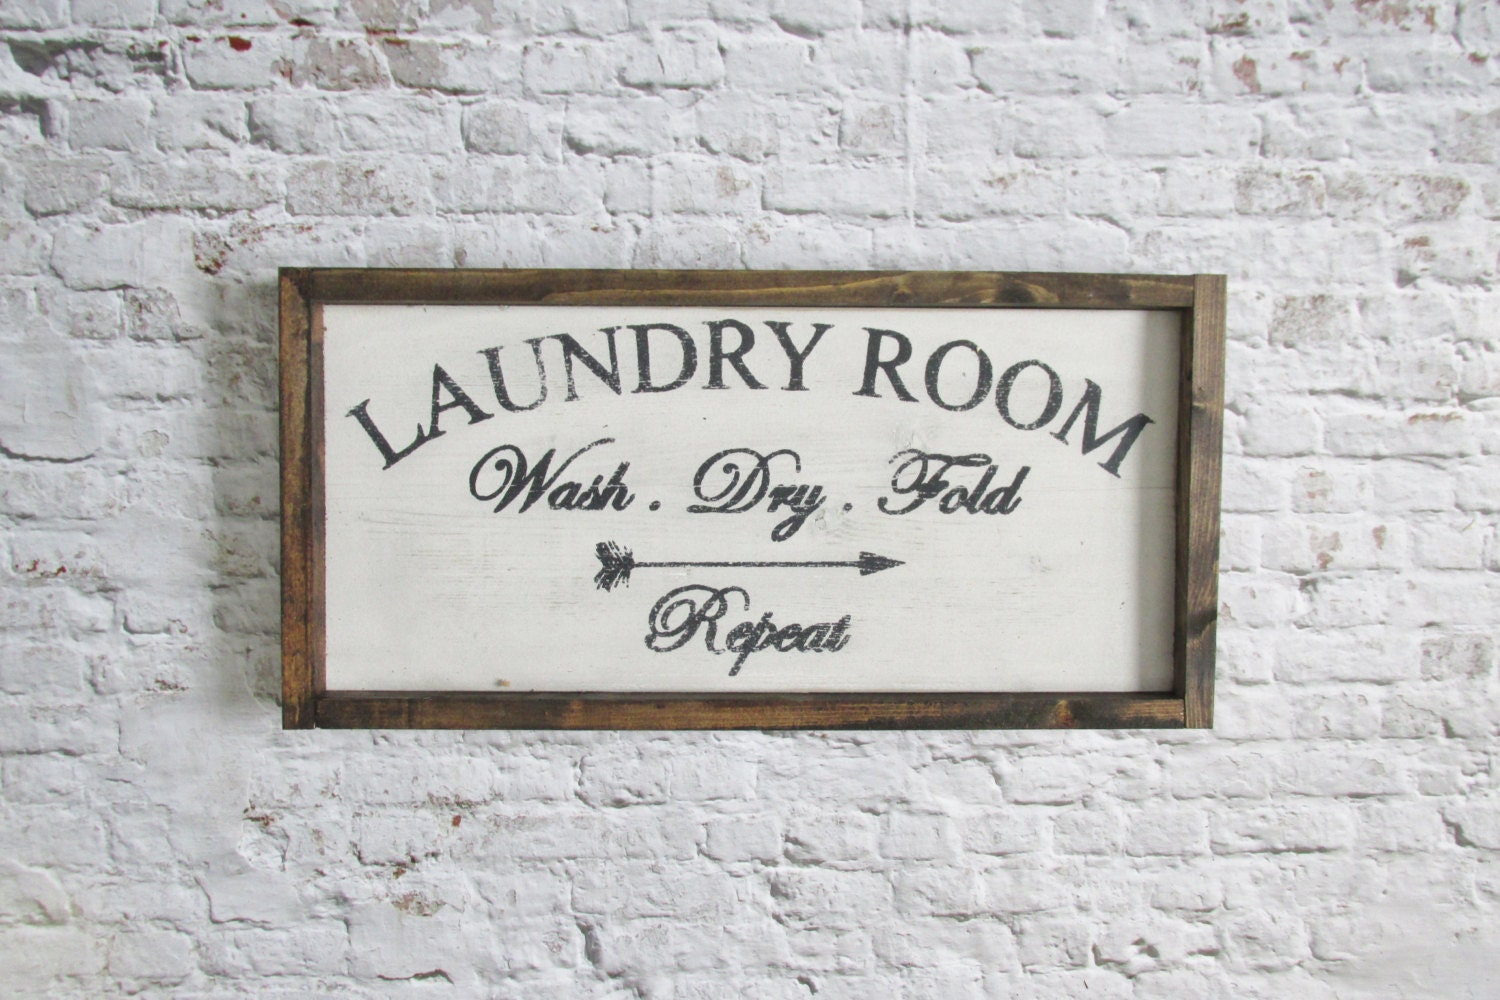 Laundry Room Wooden Signs Laundry Room Signwood Signswooden Signrustic Signs.